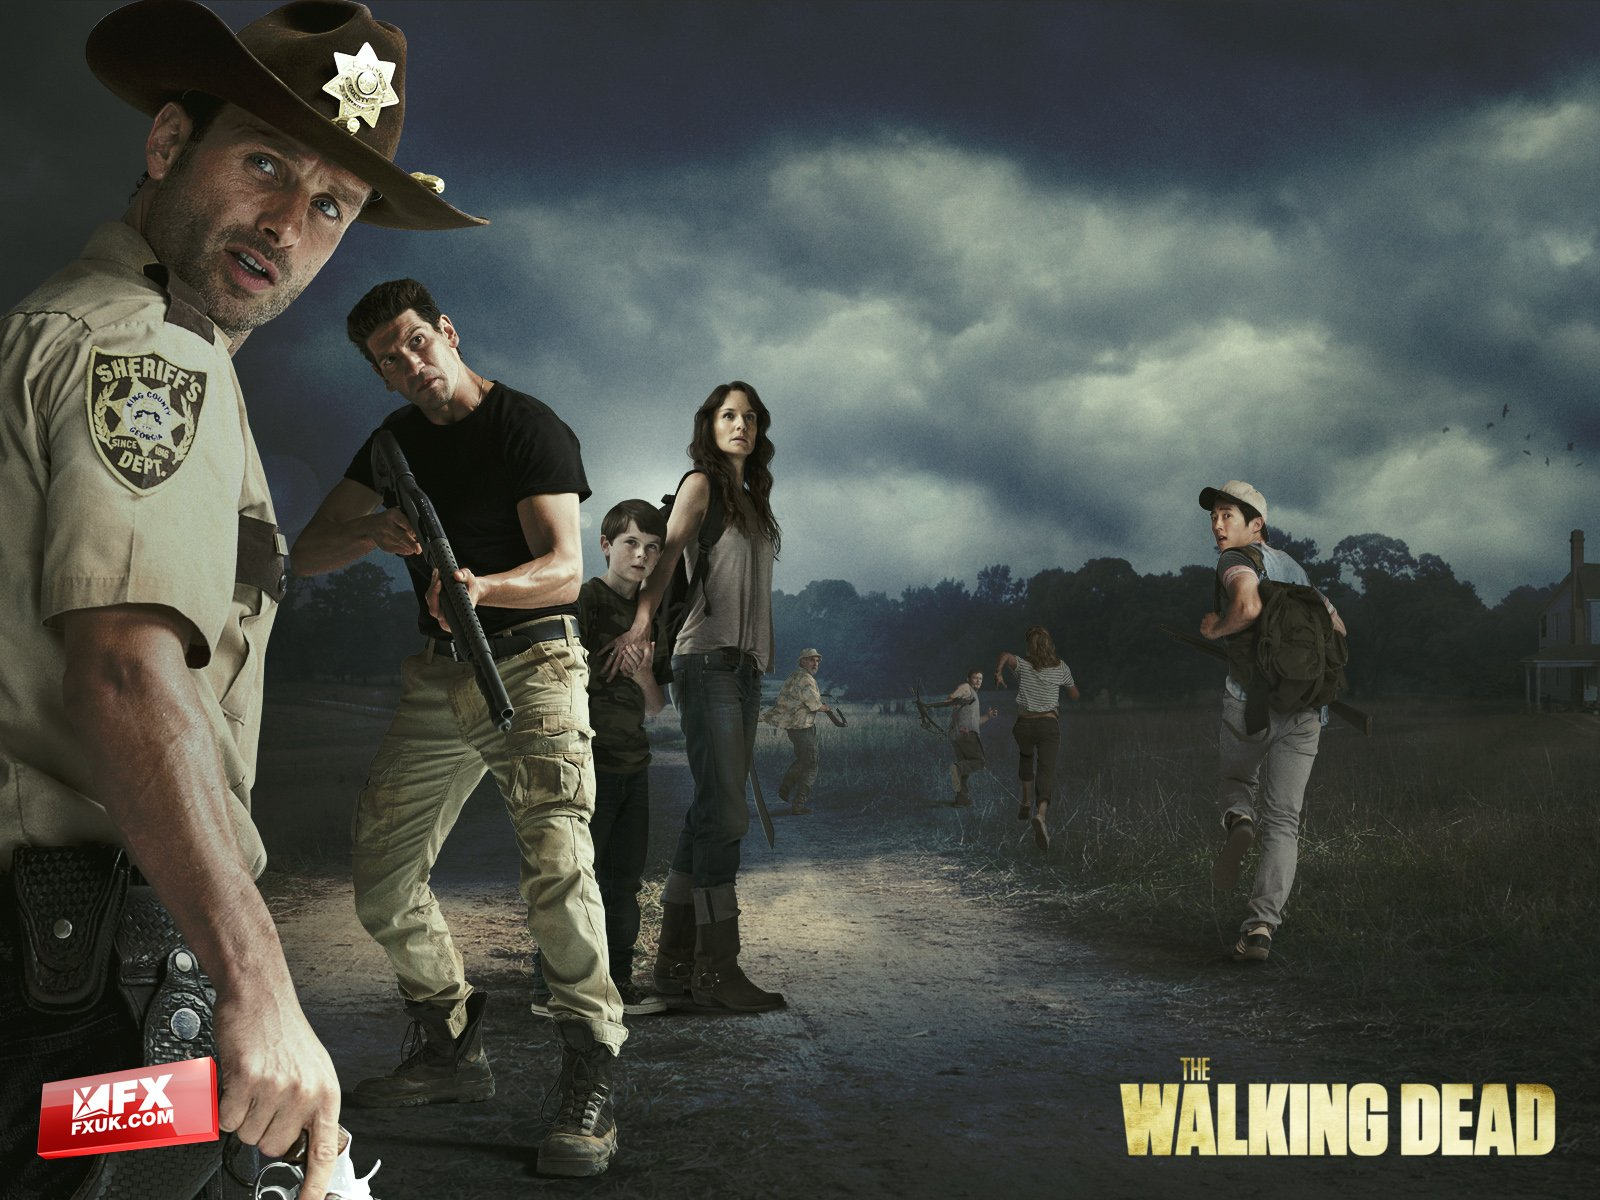 The+Walking+Dead+-+Wallpaper+-+1.jpg